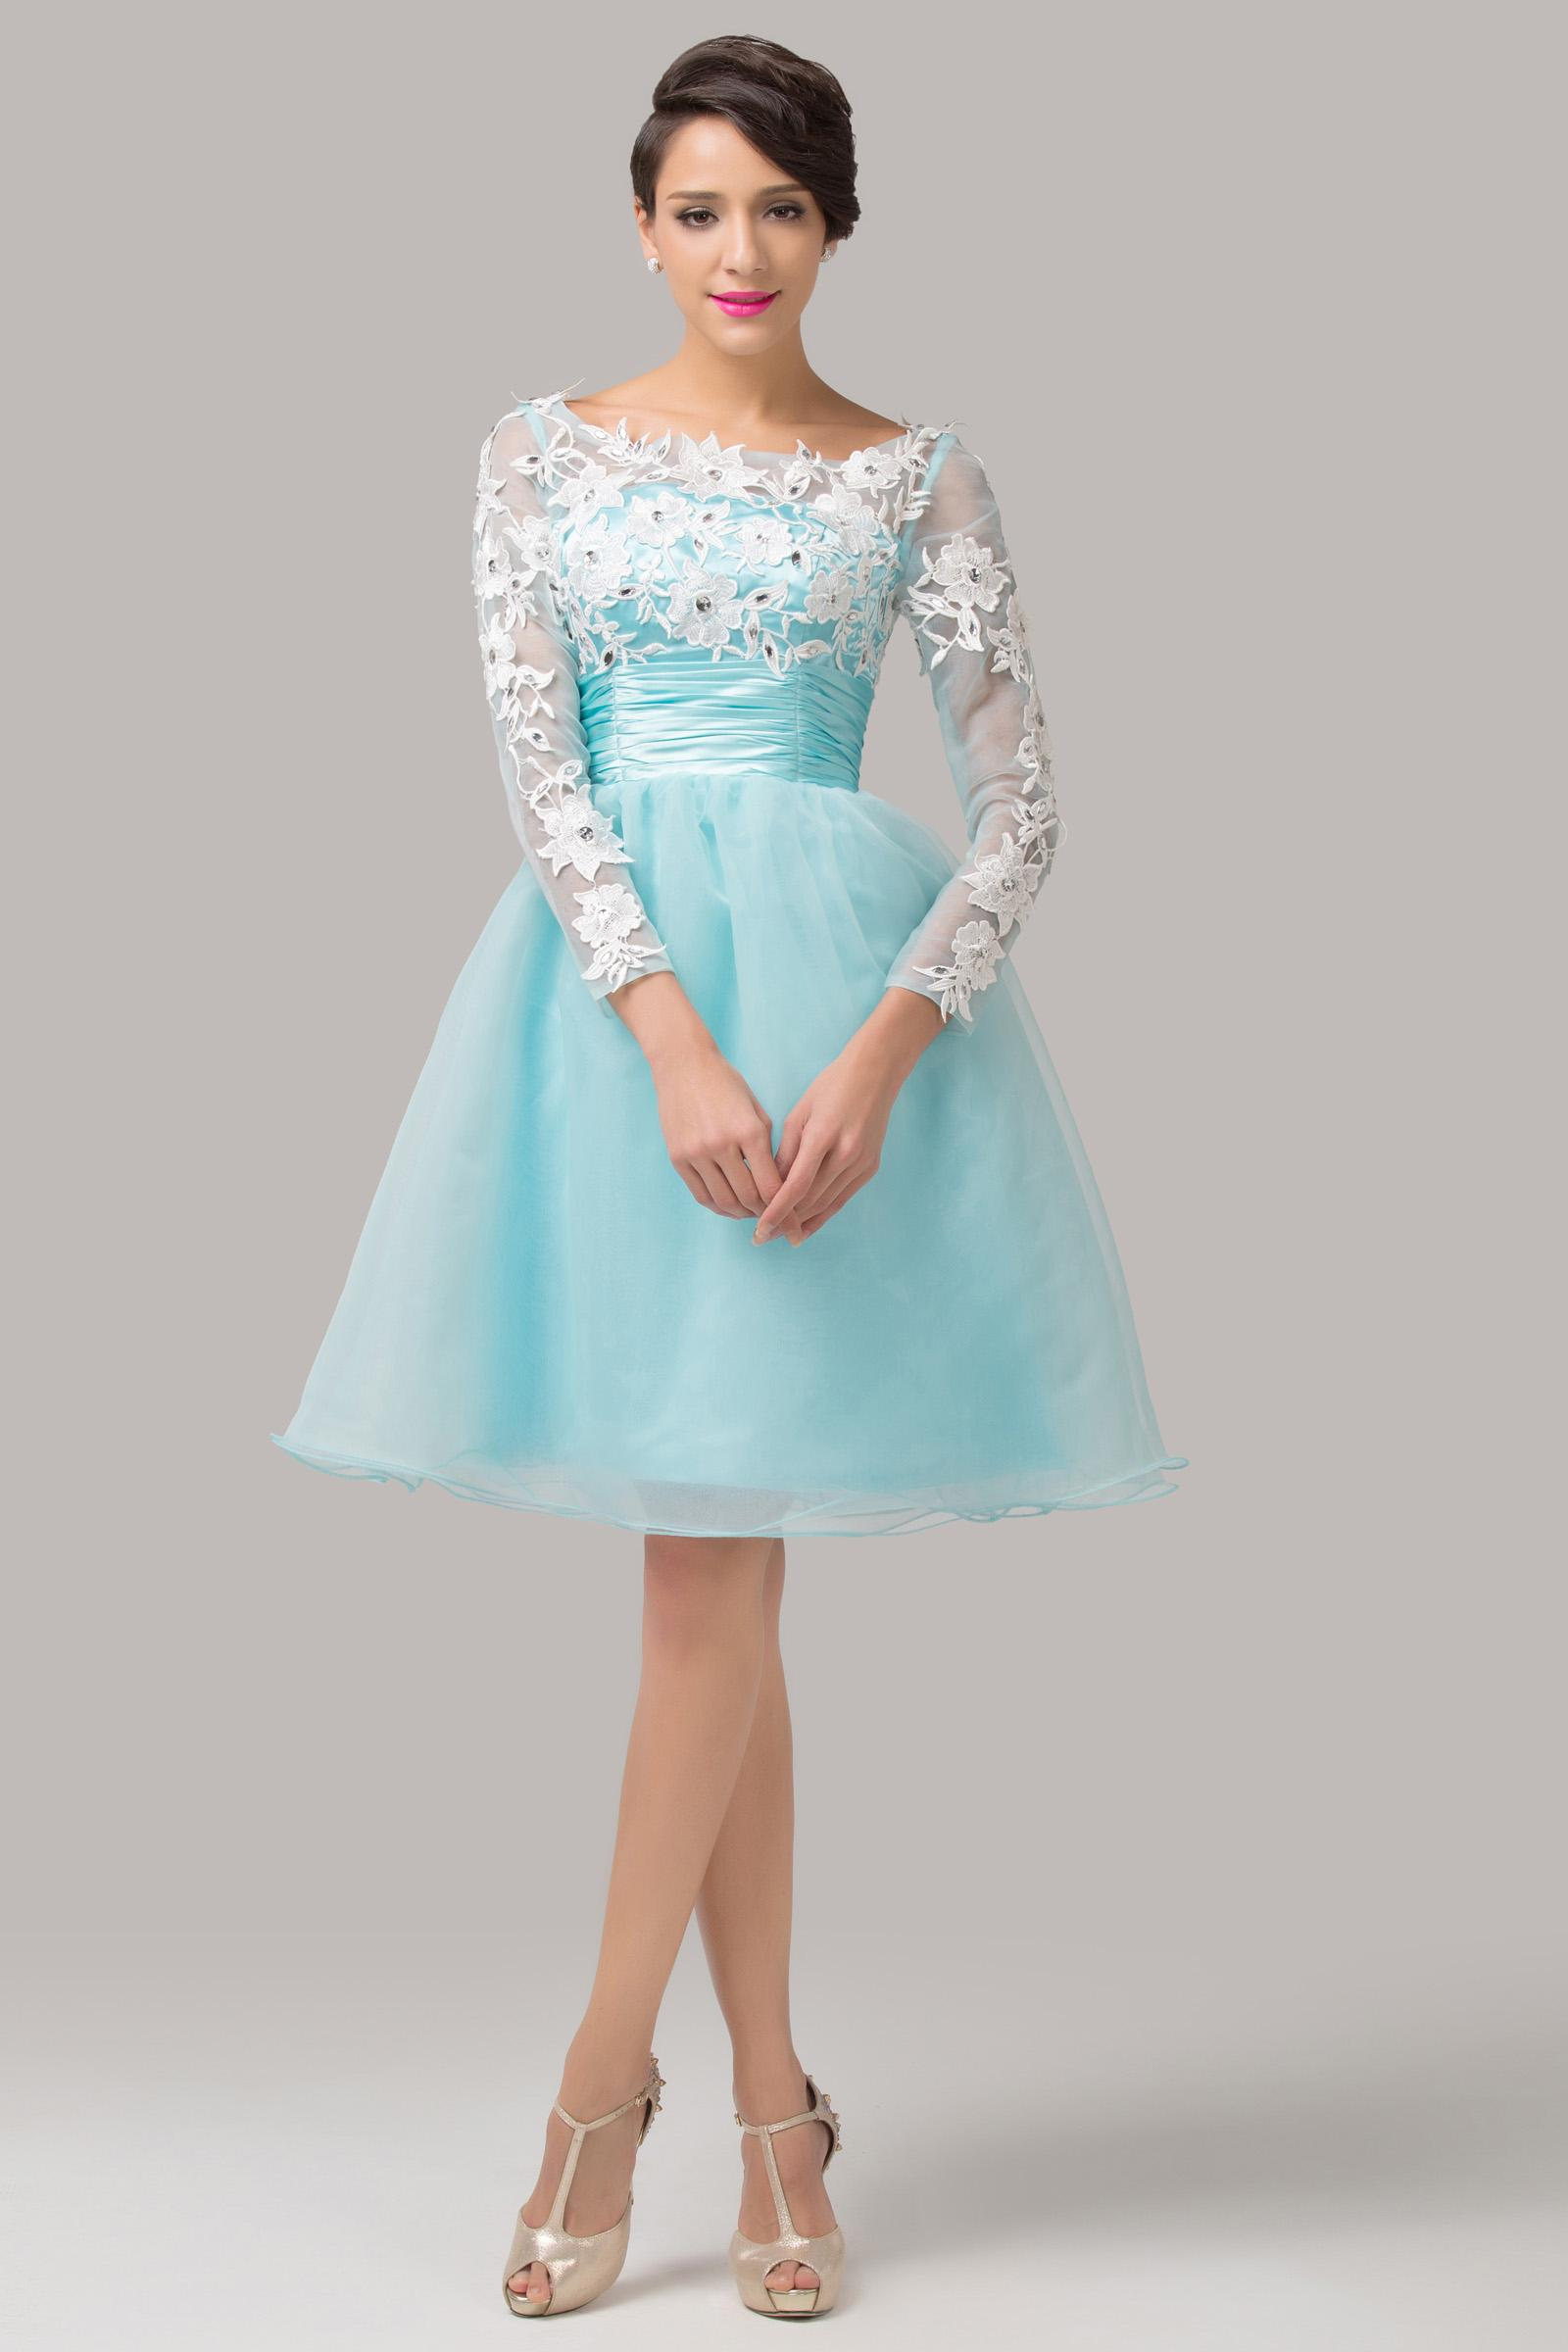 Grace Karin New Sky Blue Short Lace Party Evening Dress Prom Gown ...